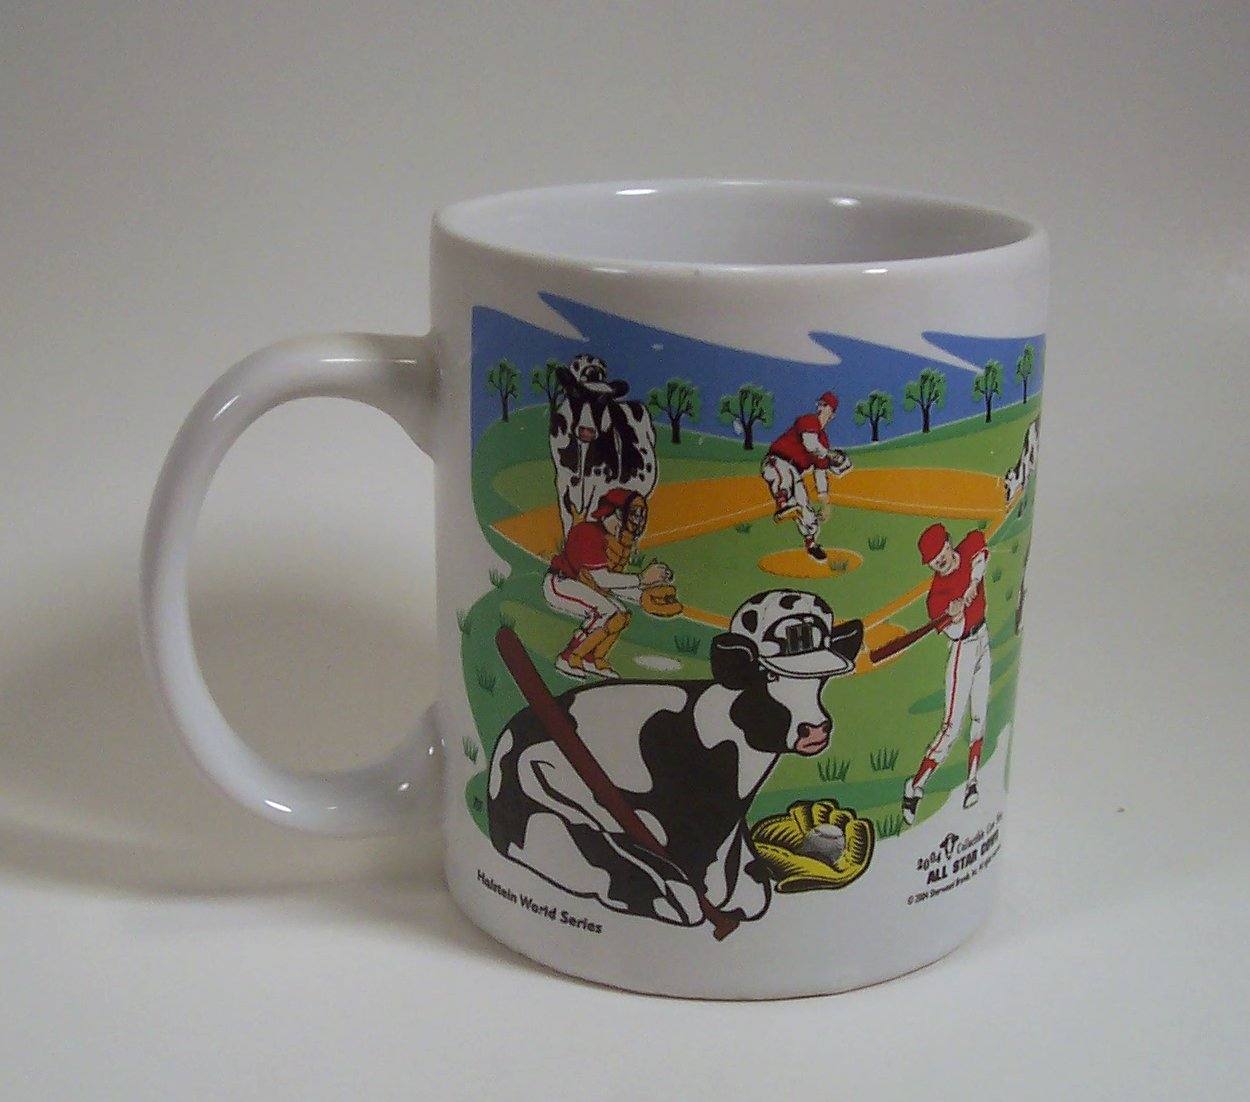 All Star Cows Holstein World Series - Pasture Super Bowl Cup Mug 2004 Sherwood Brands